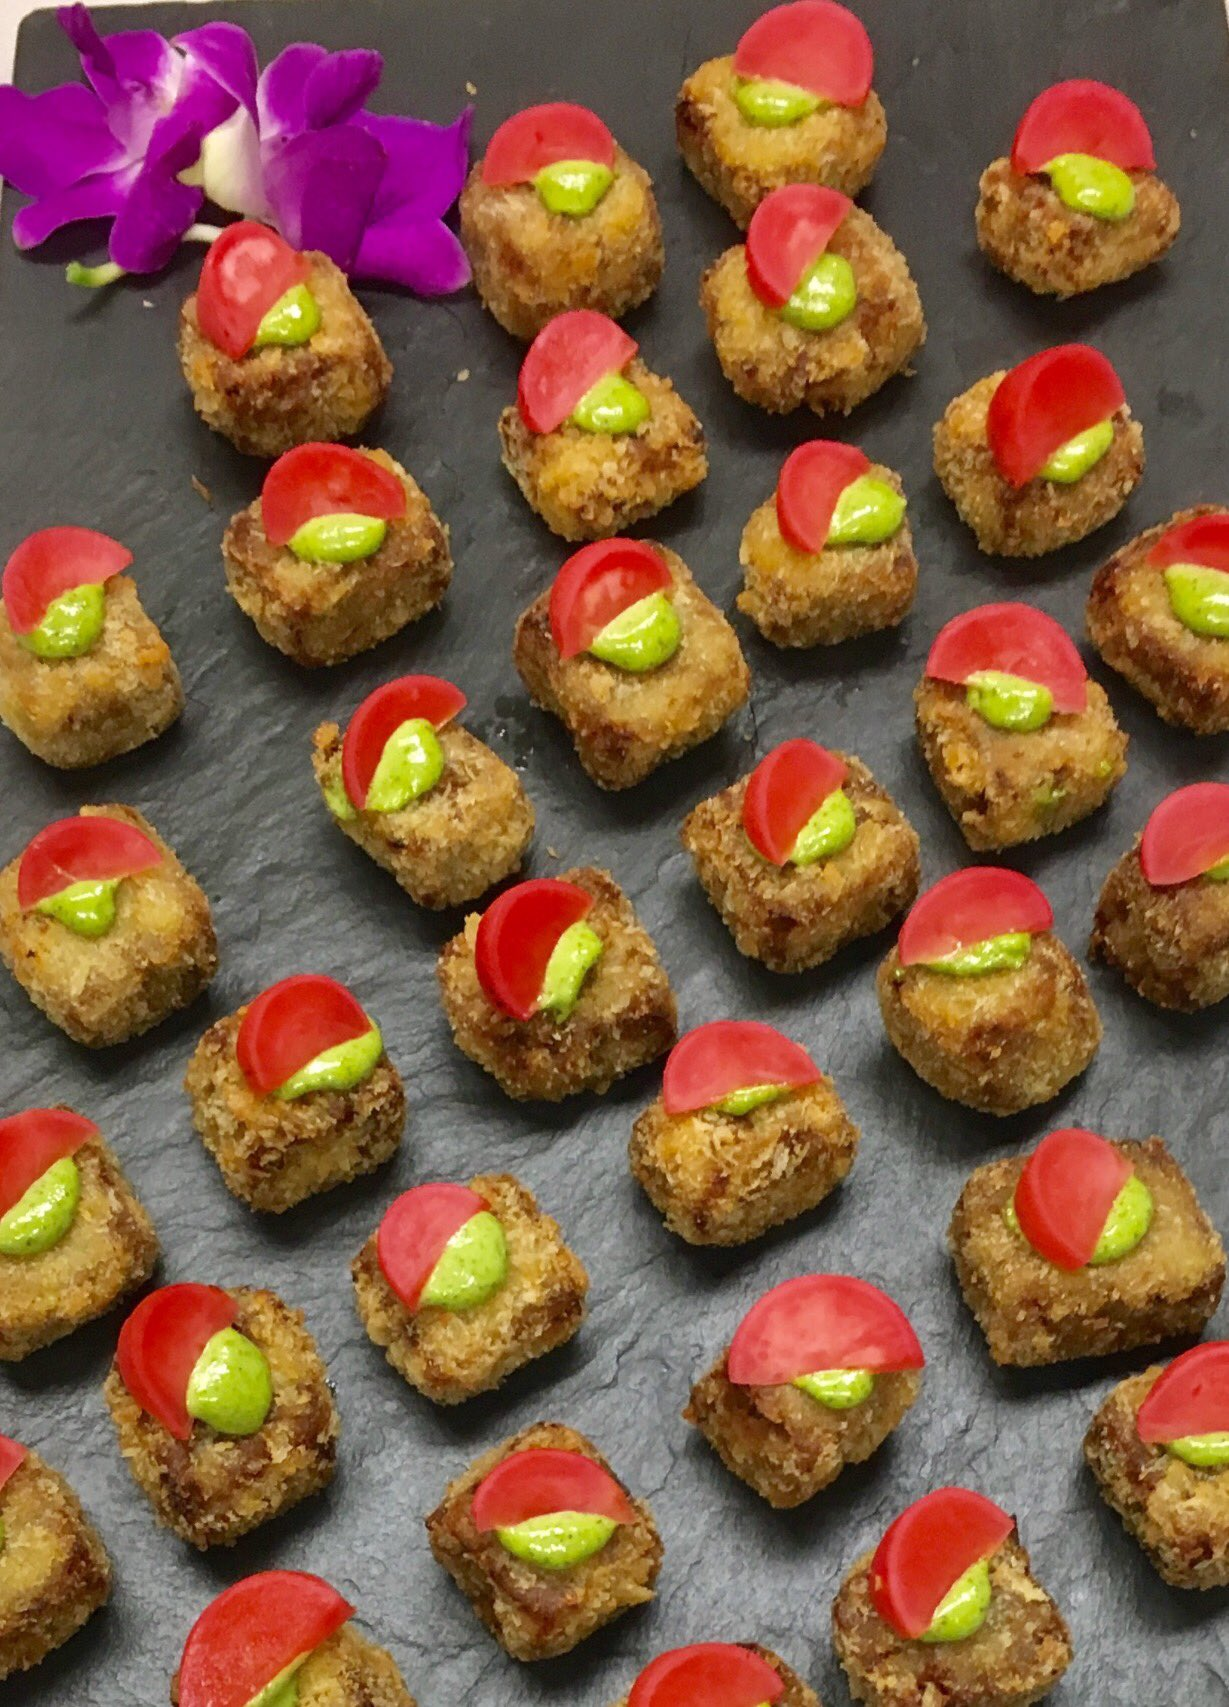 BBQ duck croquette with green onion aioli and pickled radish. #GLOWgala https://t.co/k0PB2A4m0x